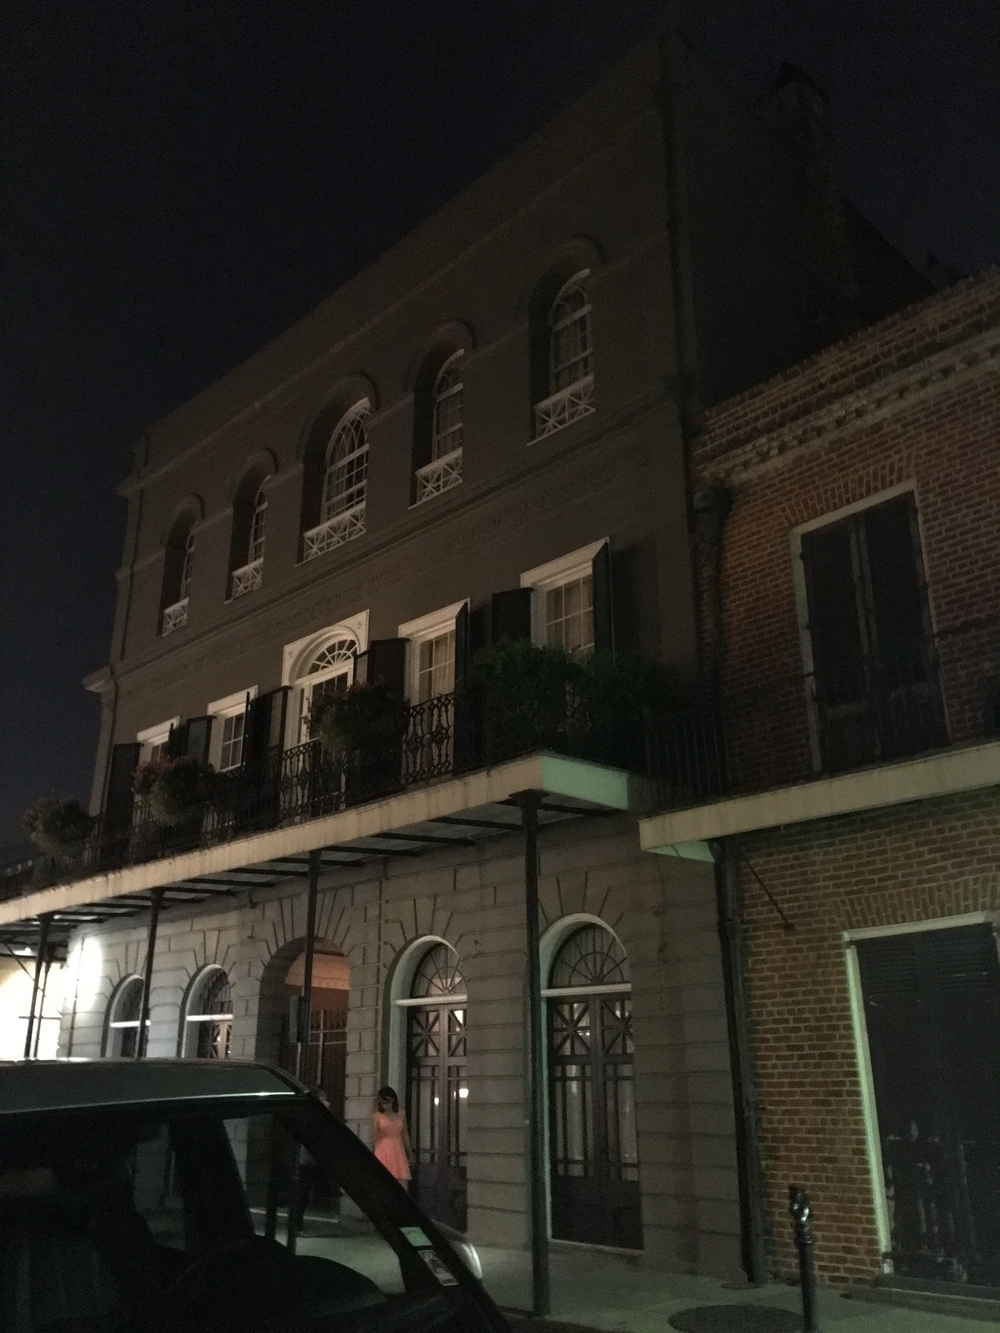 This is Madame LaLaurie's house which later ended up being Nicolas Cage's home.